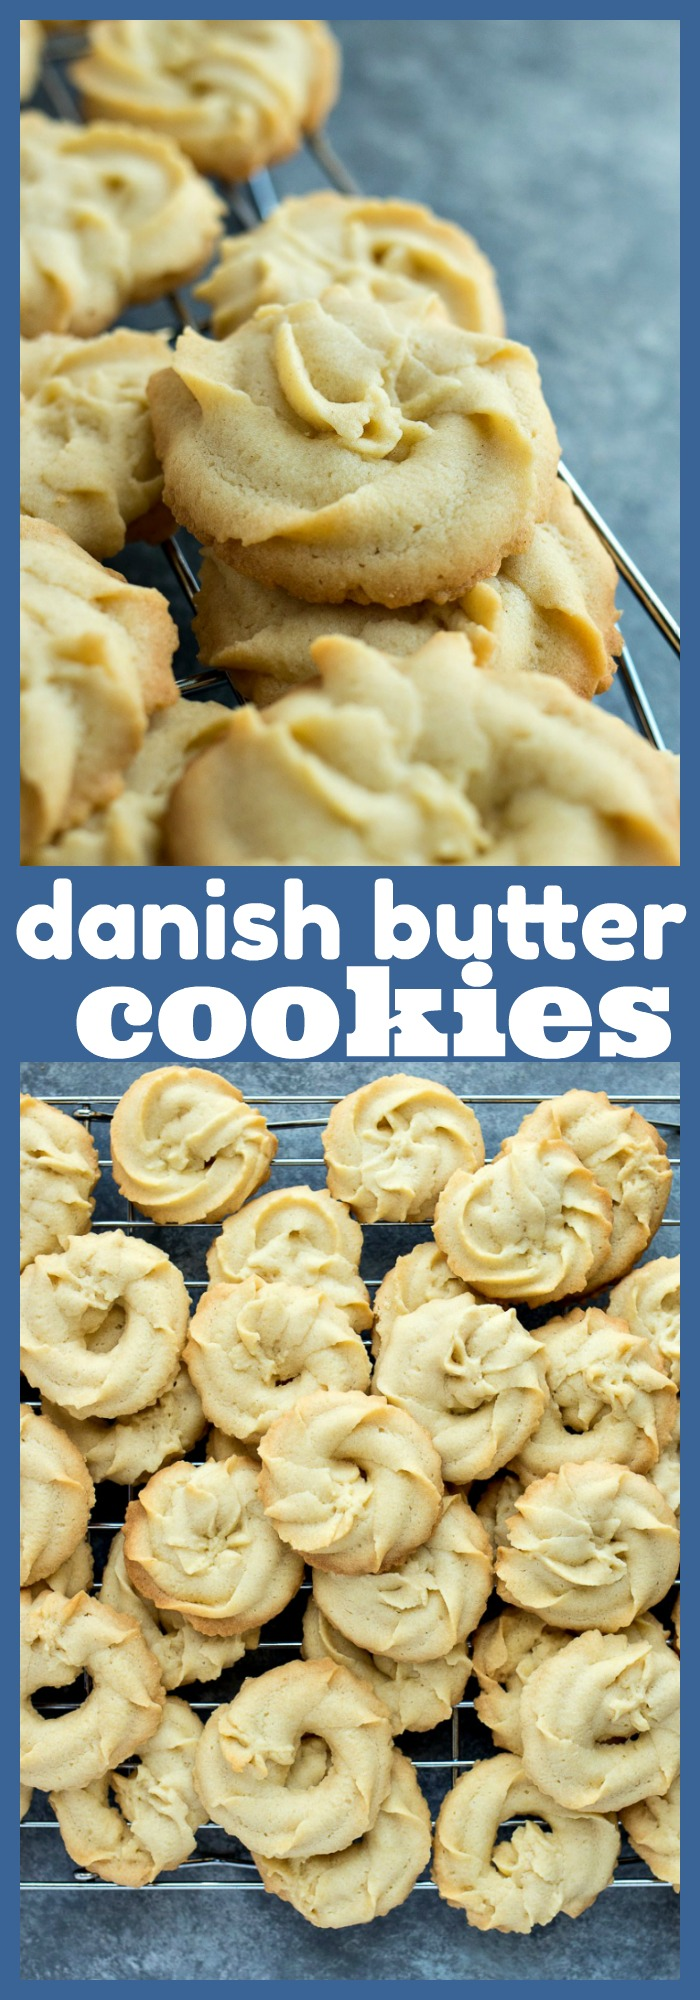 Danish Butter Cookies photo collage